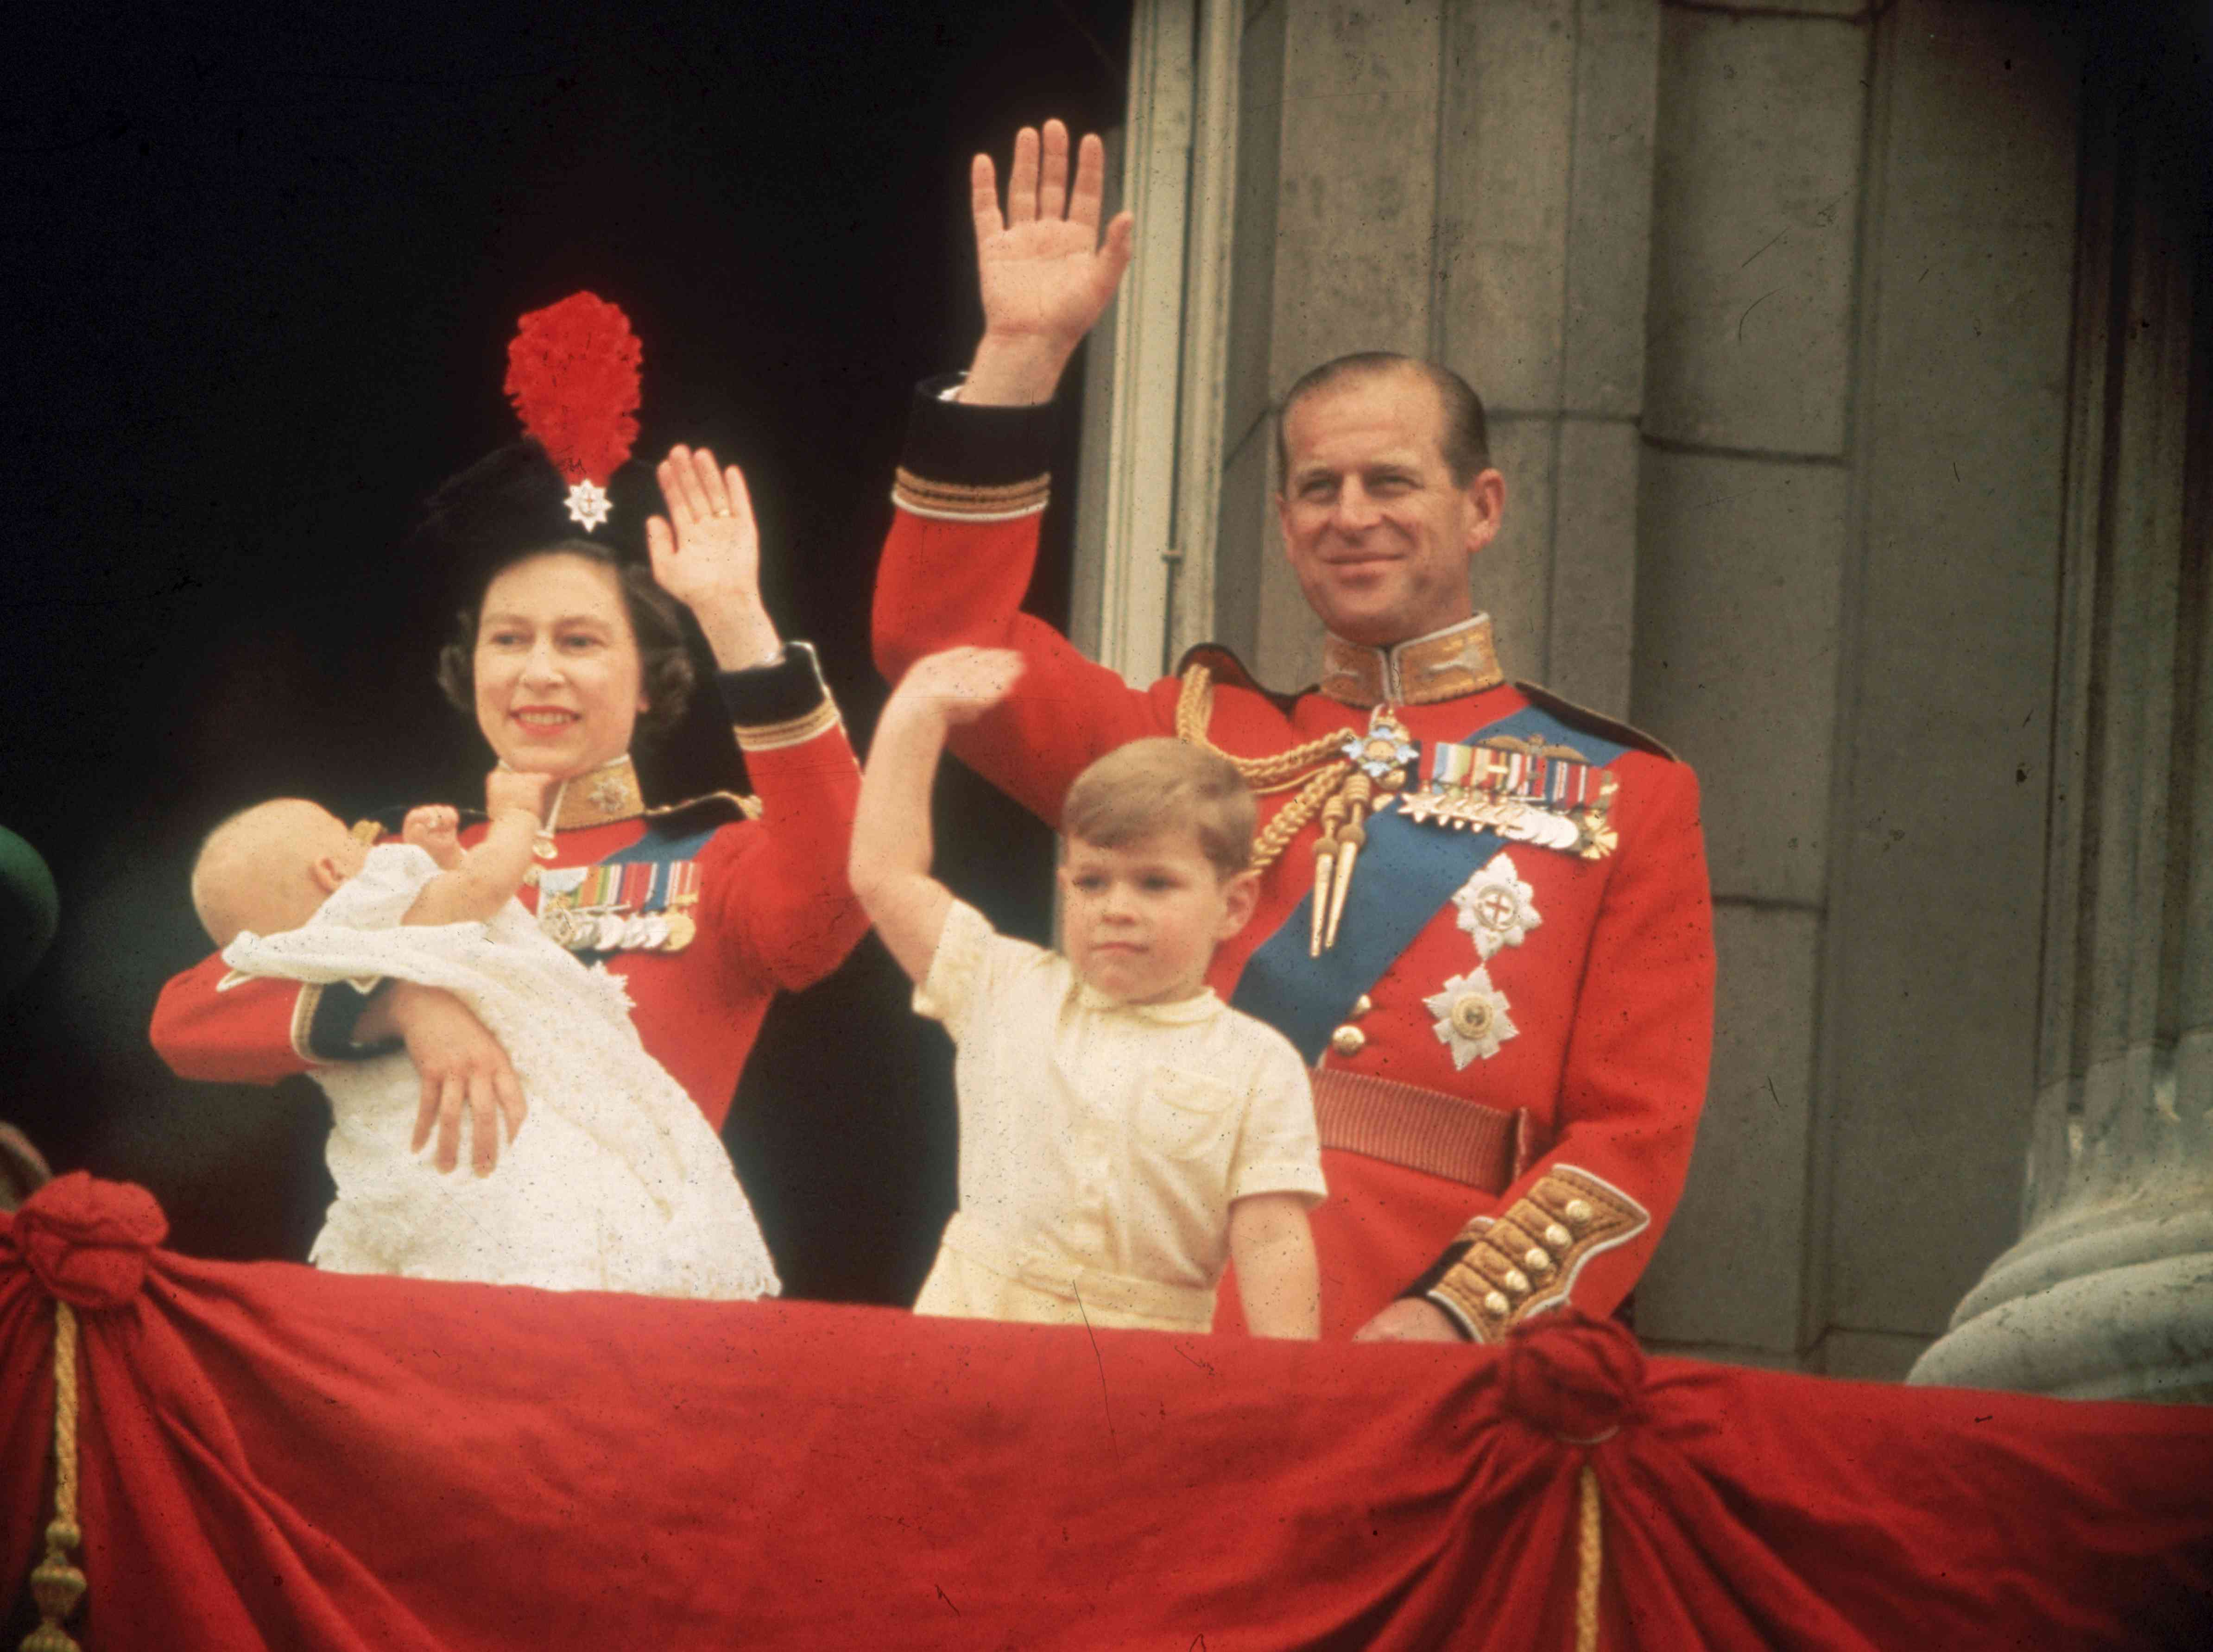 Queen Elizabeth and Prince Philip with kids